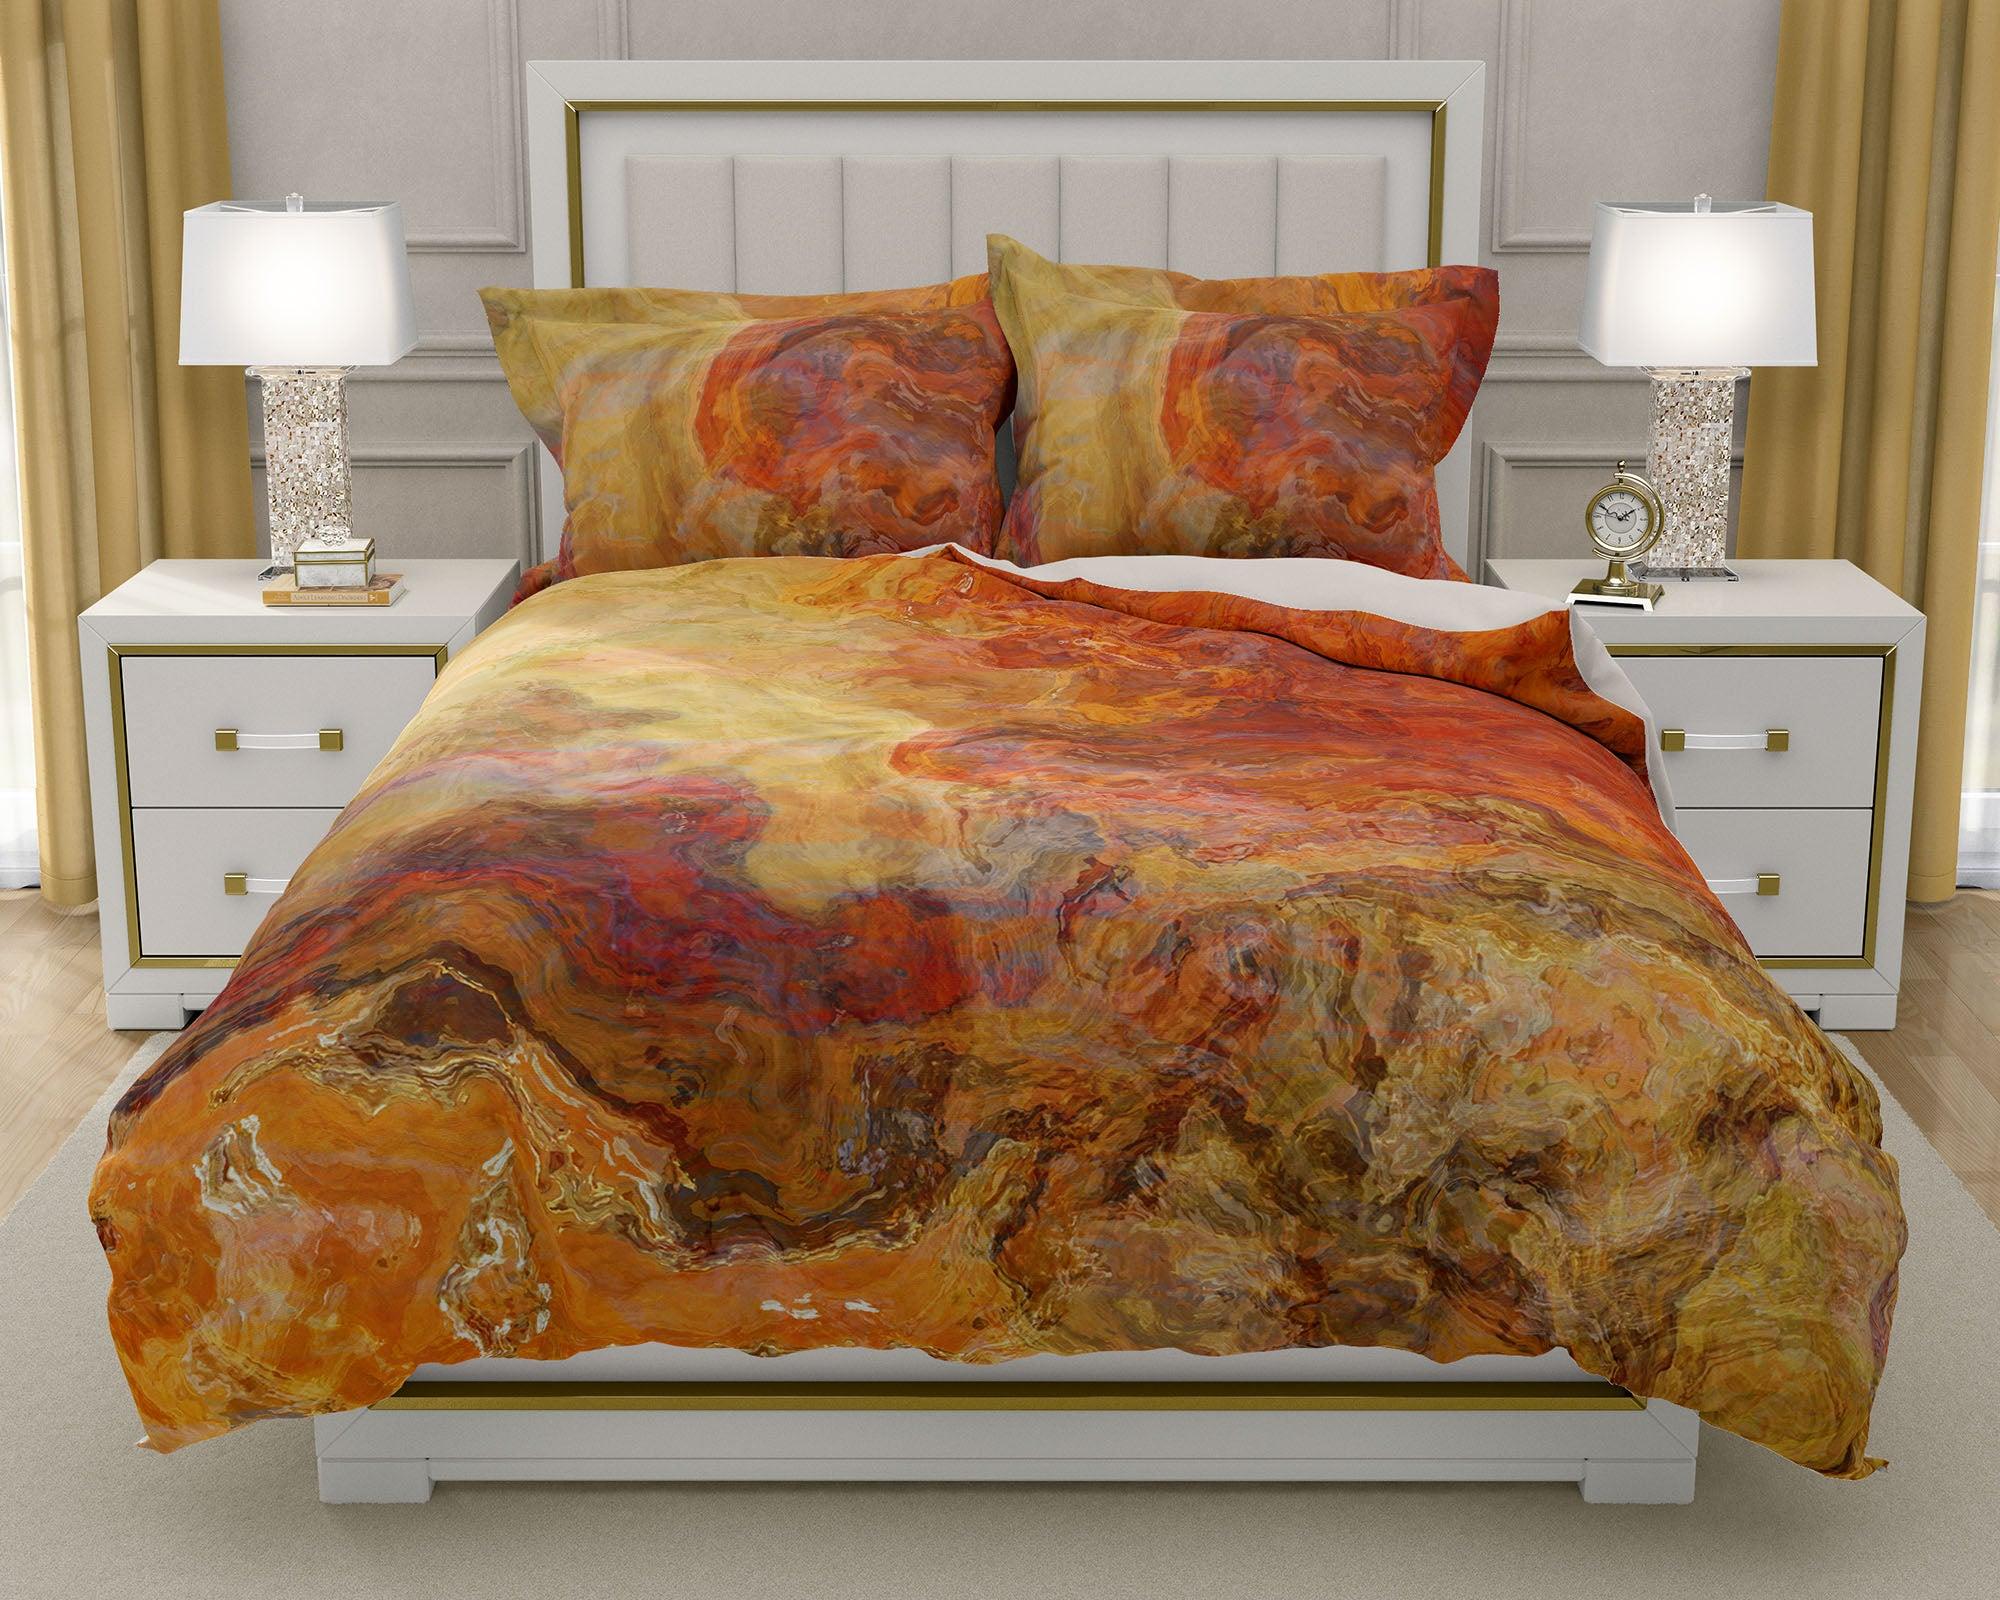 King or Queen Duvet Cover, Magma